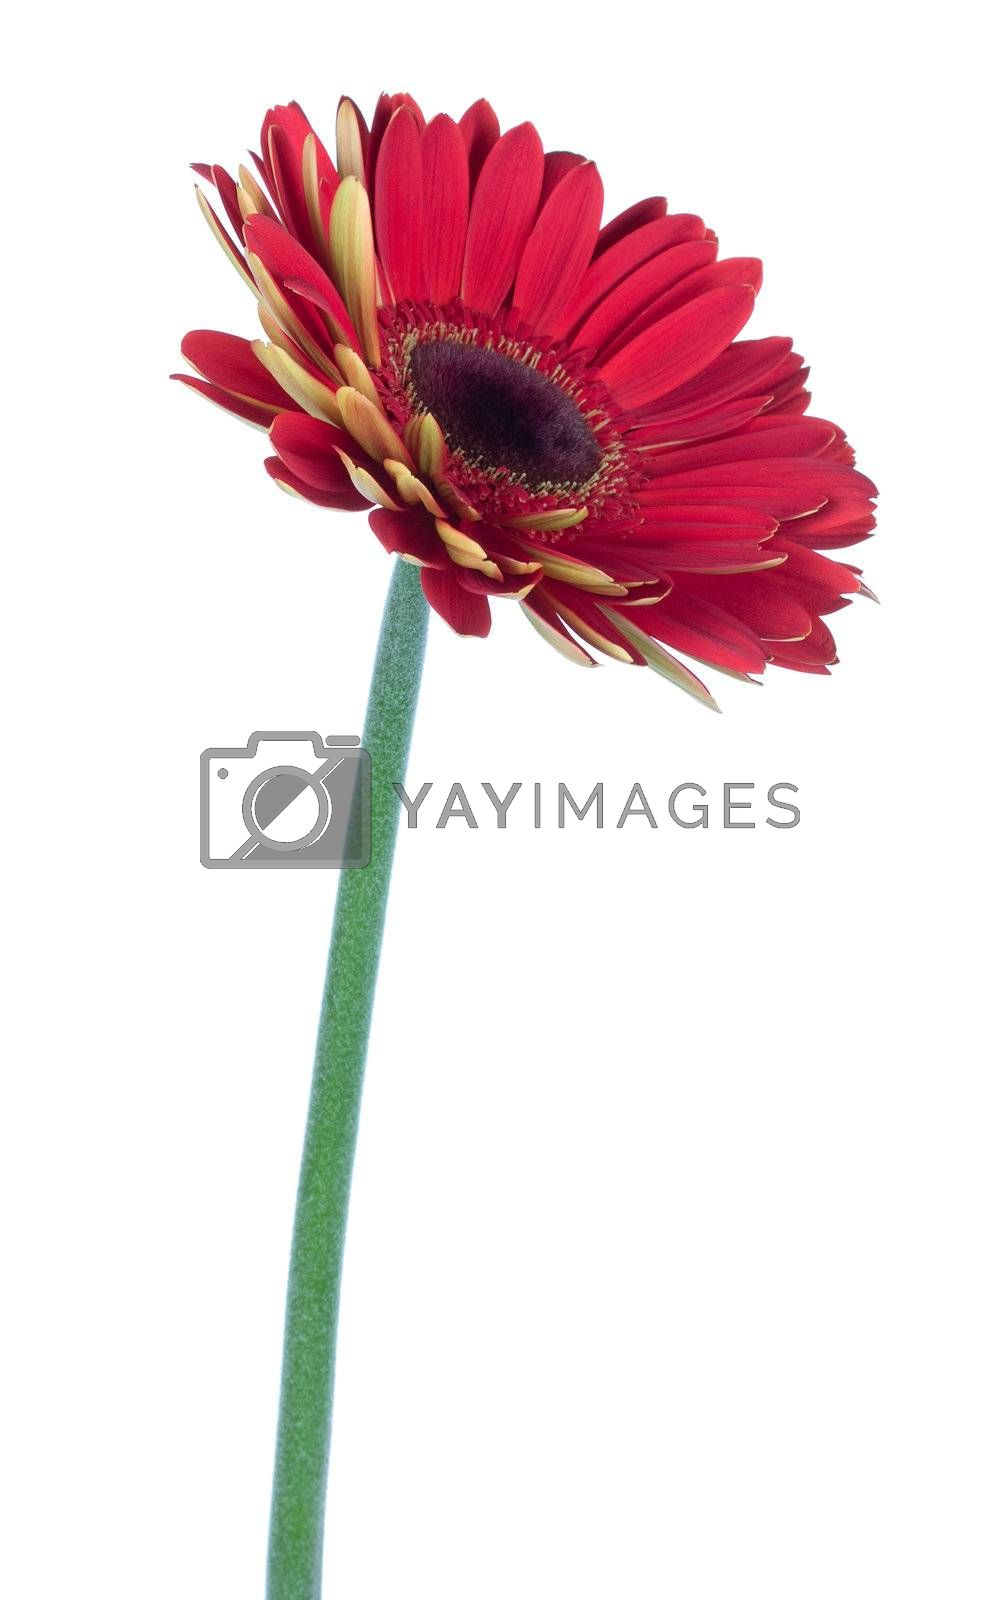 single red gerbera flower, side view, isolated on white